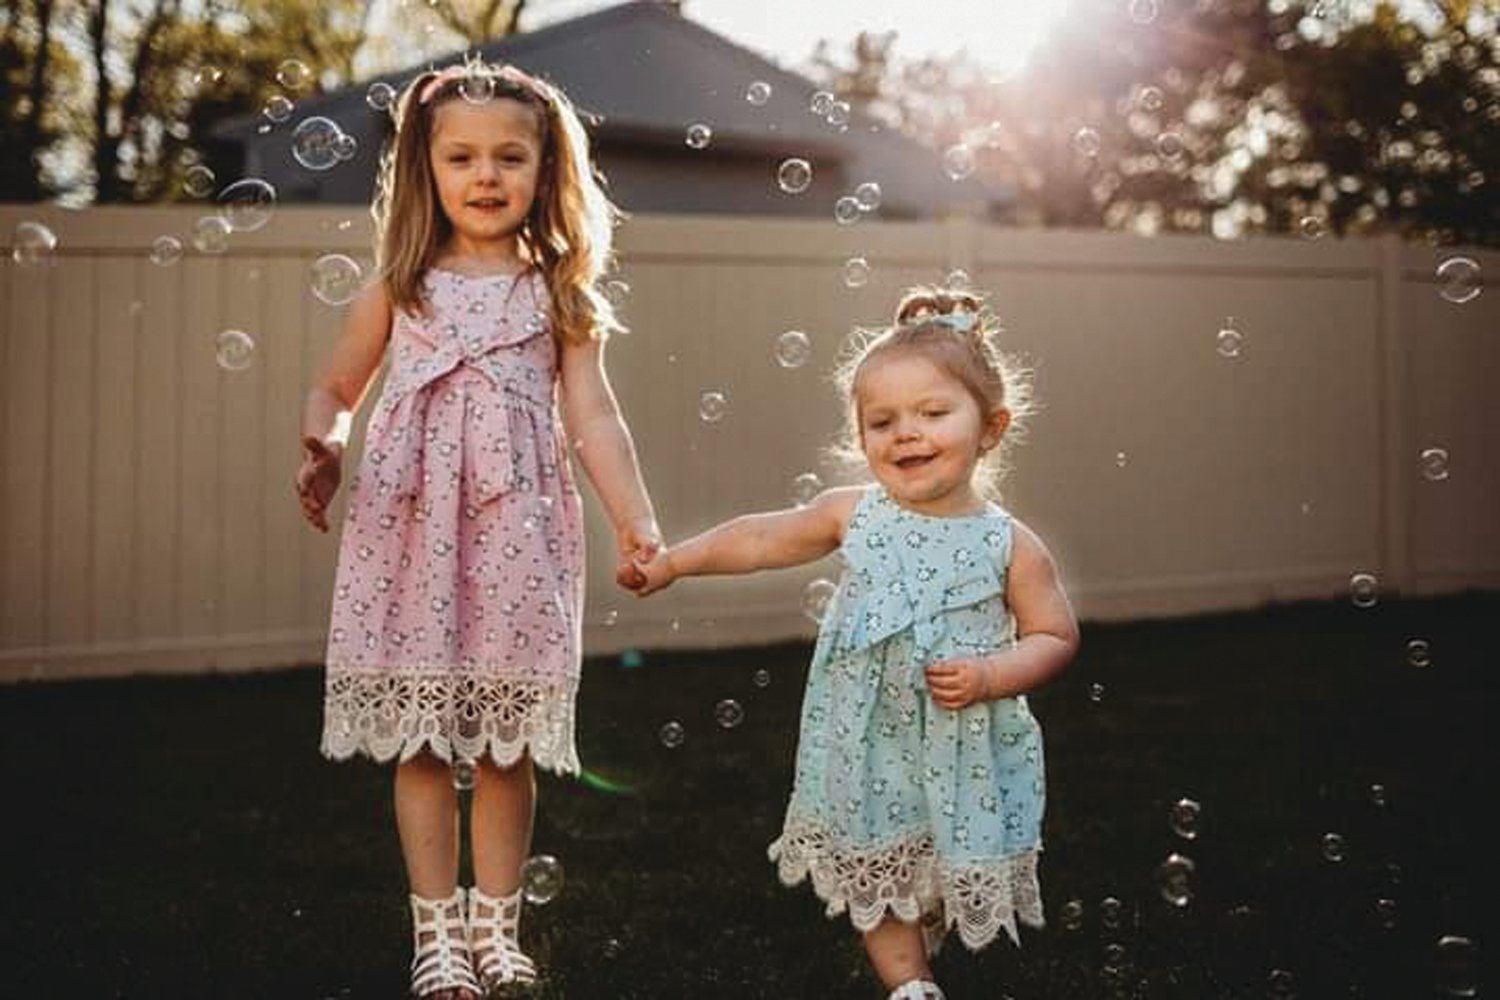 HAPPY AND HEALTHY: Lucia and Gemma Durrigan were each born healthy, but health scares resulted in stays for each at Hasbro Children's Hospital during infancy. The girls are happy and healthy today – and Lucia, apparently inspired by her ordeal, says she wants to one day be a pediatrician.